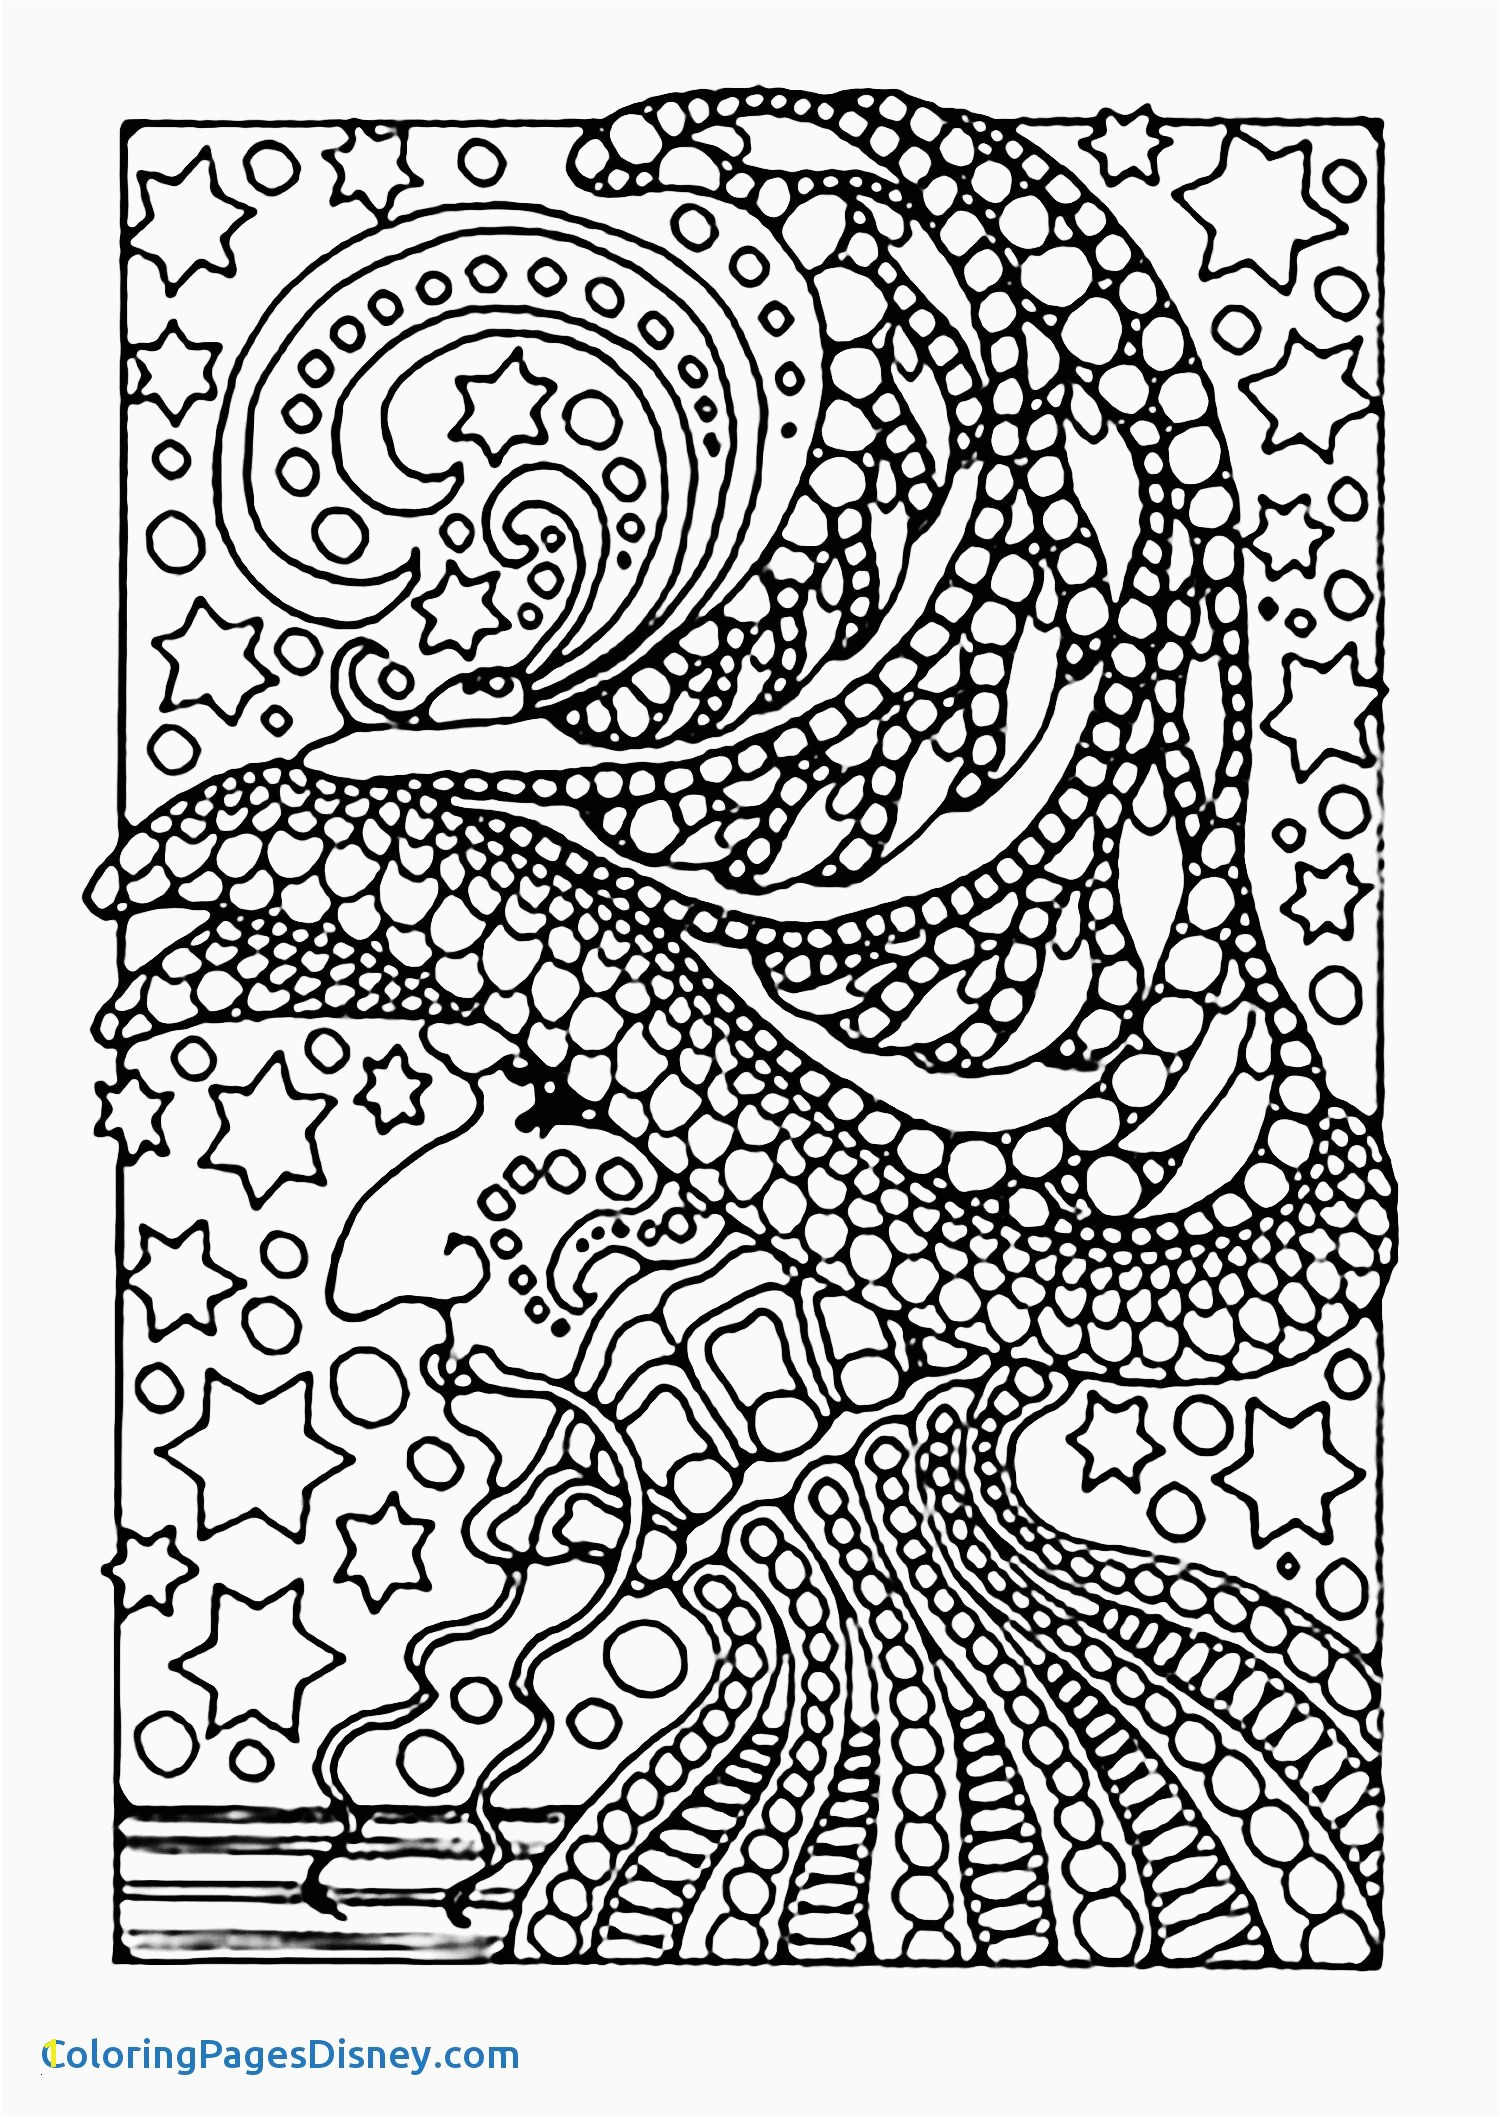 Christmas Mandala Coloring Pages Printable 58 Luxury Free Christmas Mandala Coloring Pages Dannerchonoles